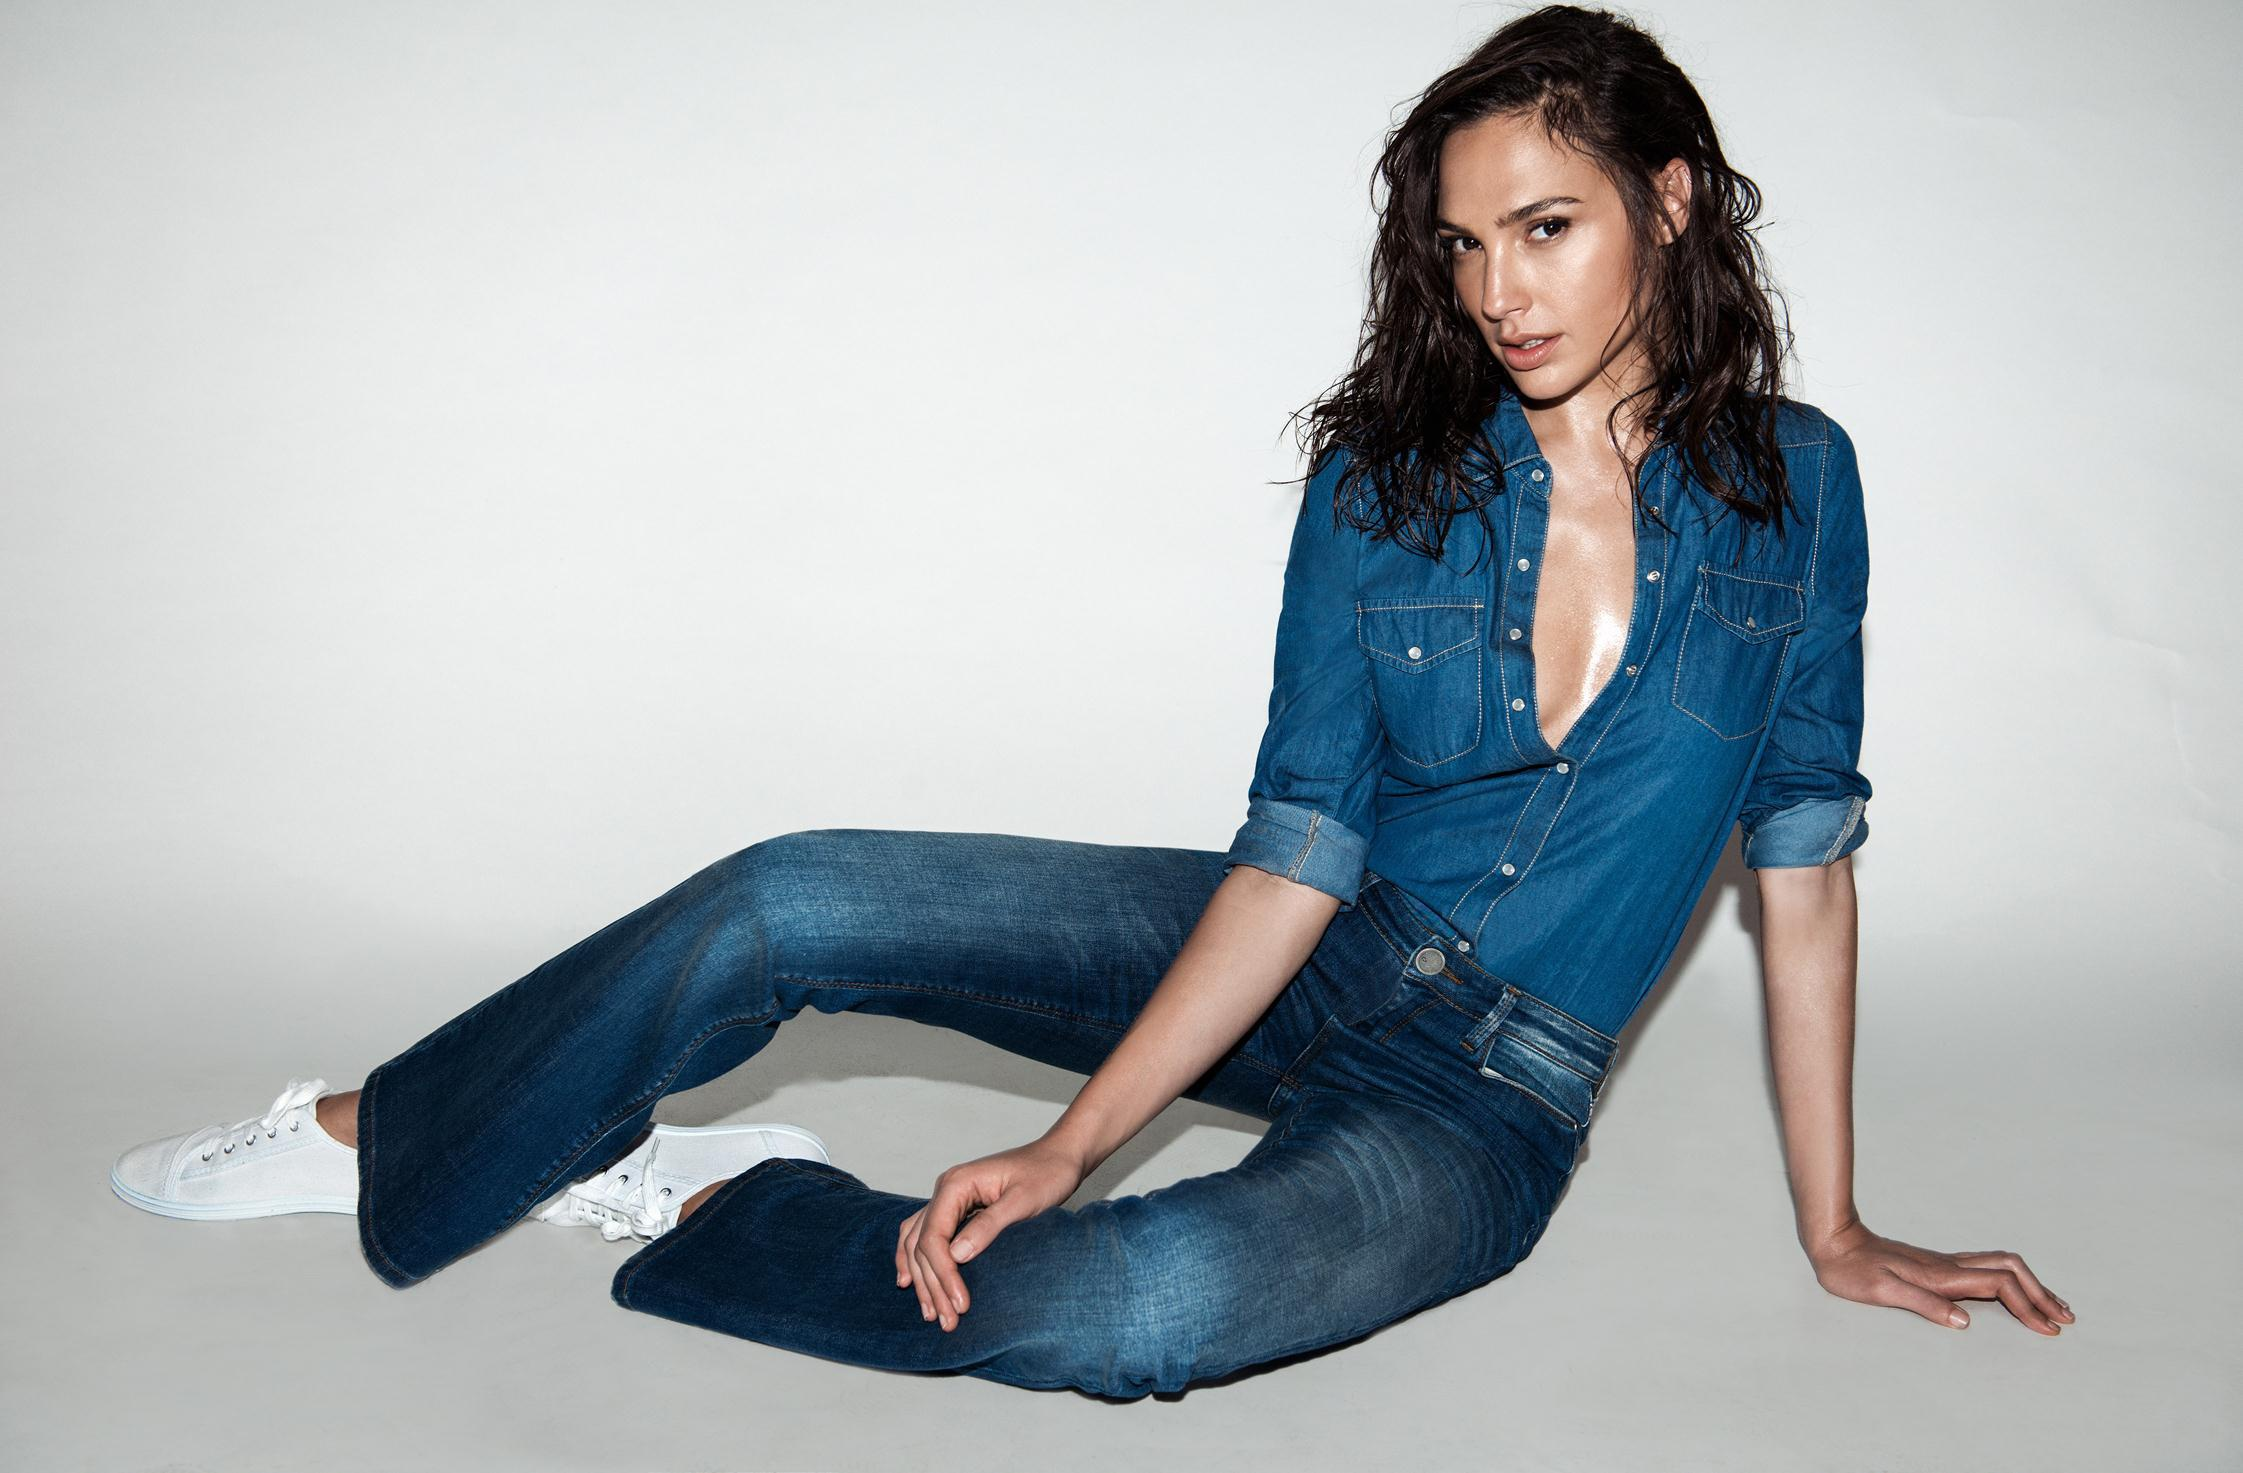 Sexxx gal gadot facking images bent over for